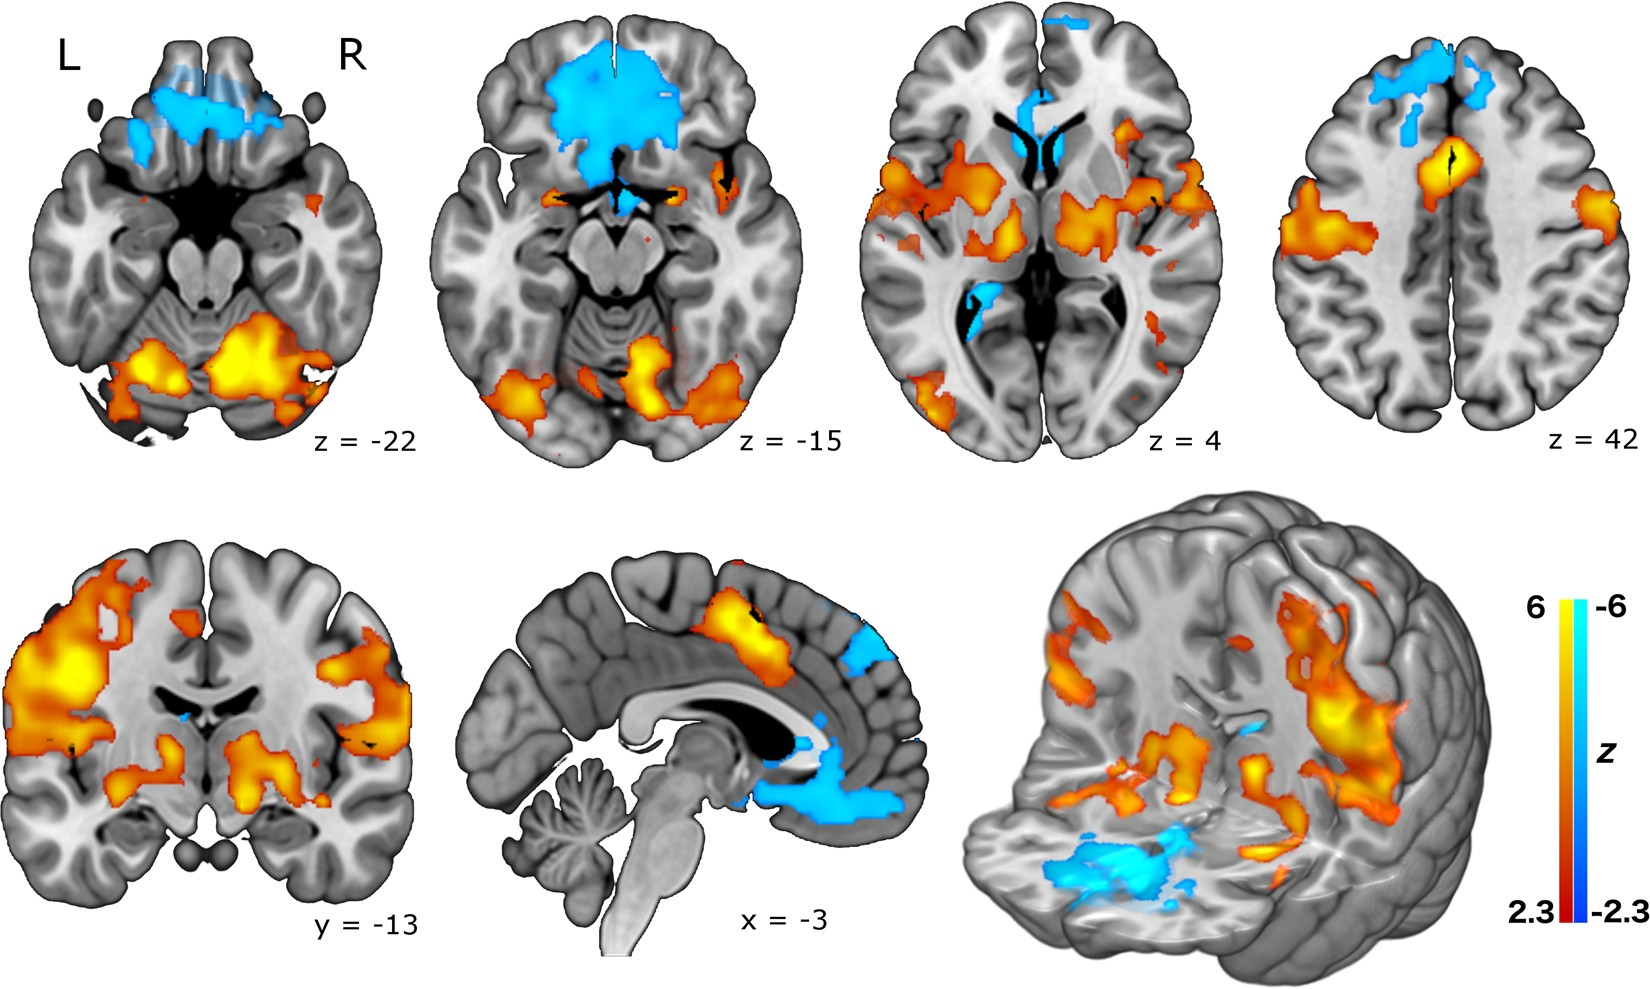 Investigating The Neural Correlates Of Smoking Feasibility And 99 Electronic Toolbox 10 Combines Results Combining Cigarettes With Fmri Scientific Reports